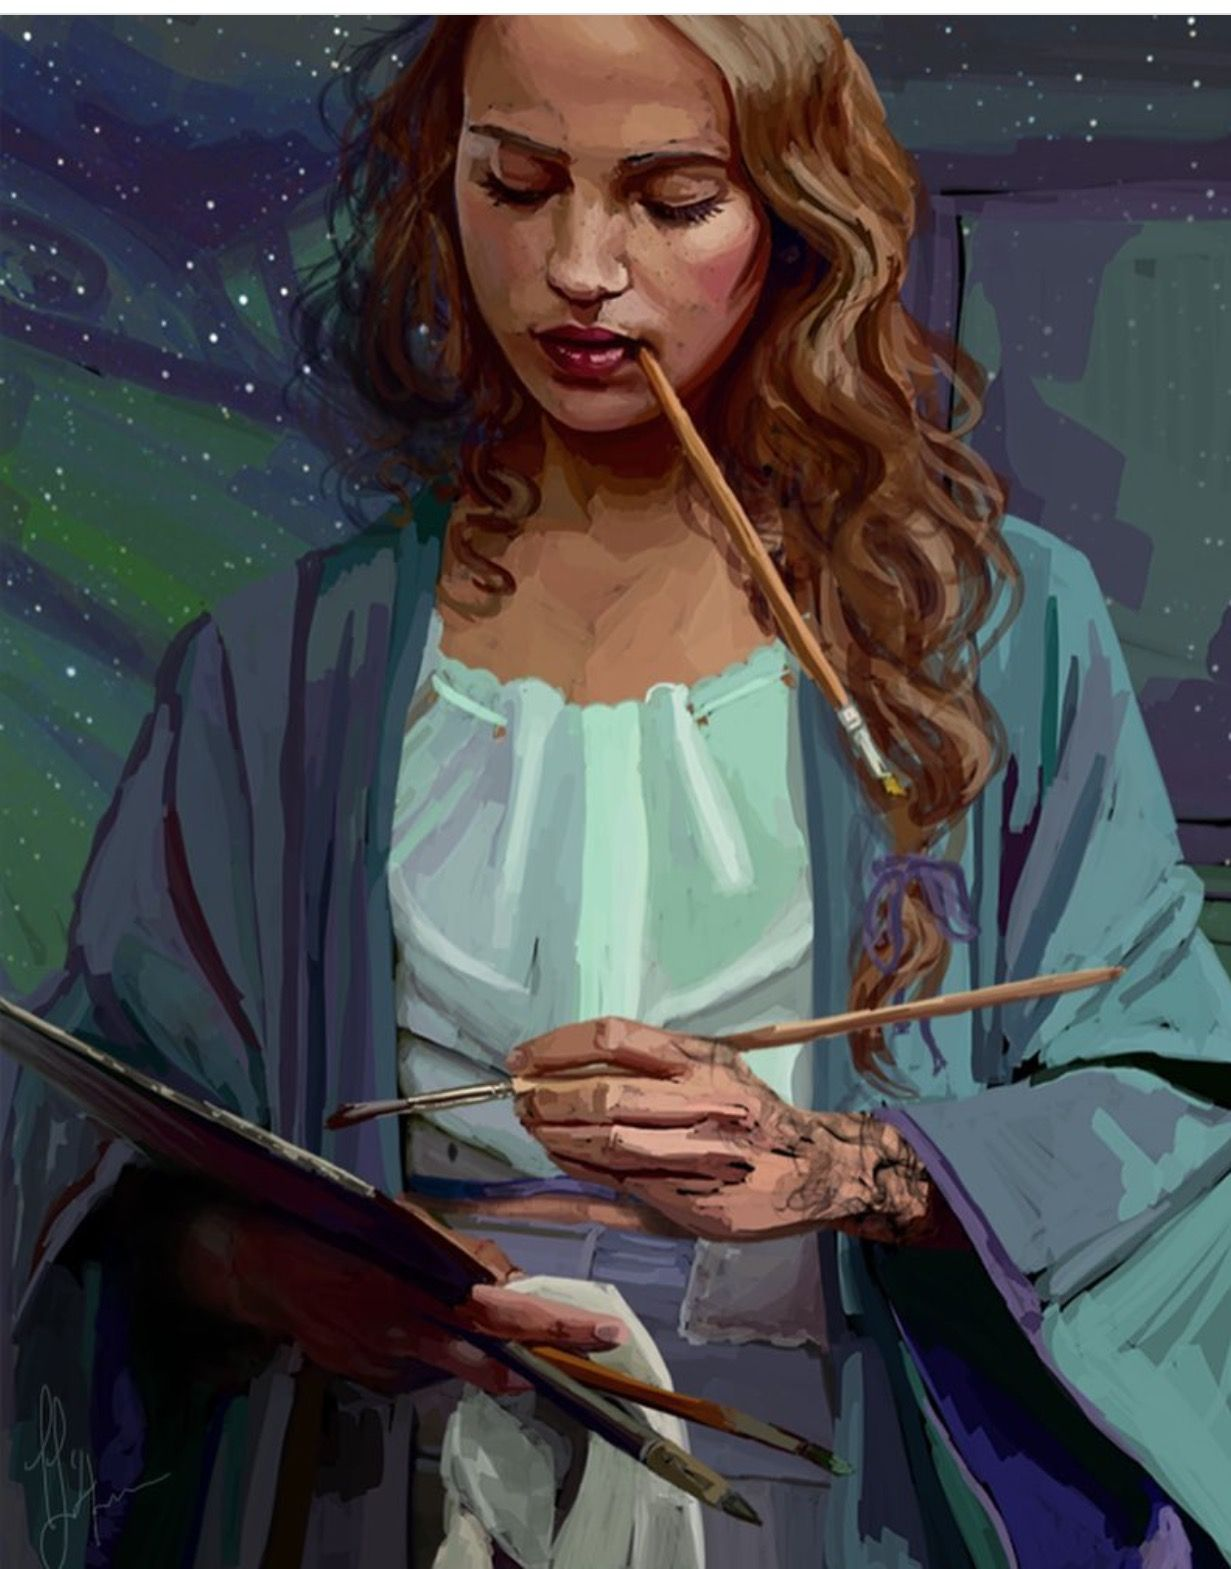 Feyre Painting In Velaris Not My Pic A Court Of Mist And Fury